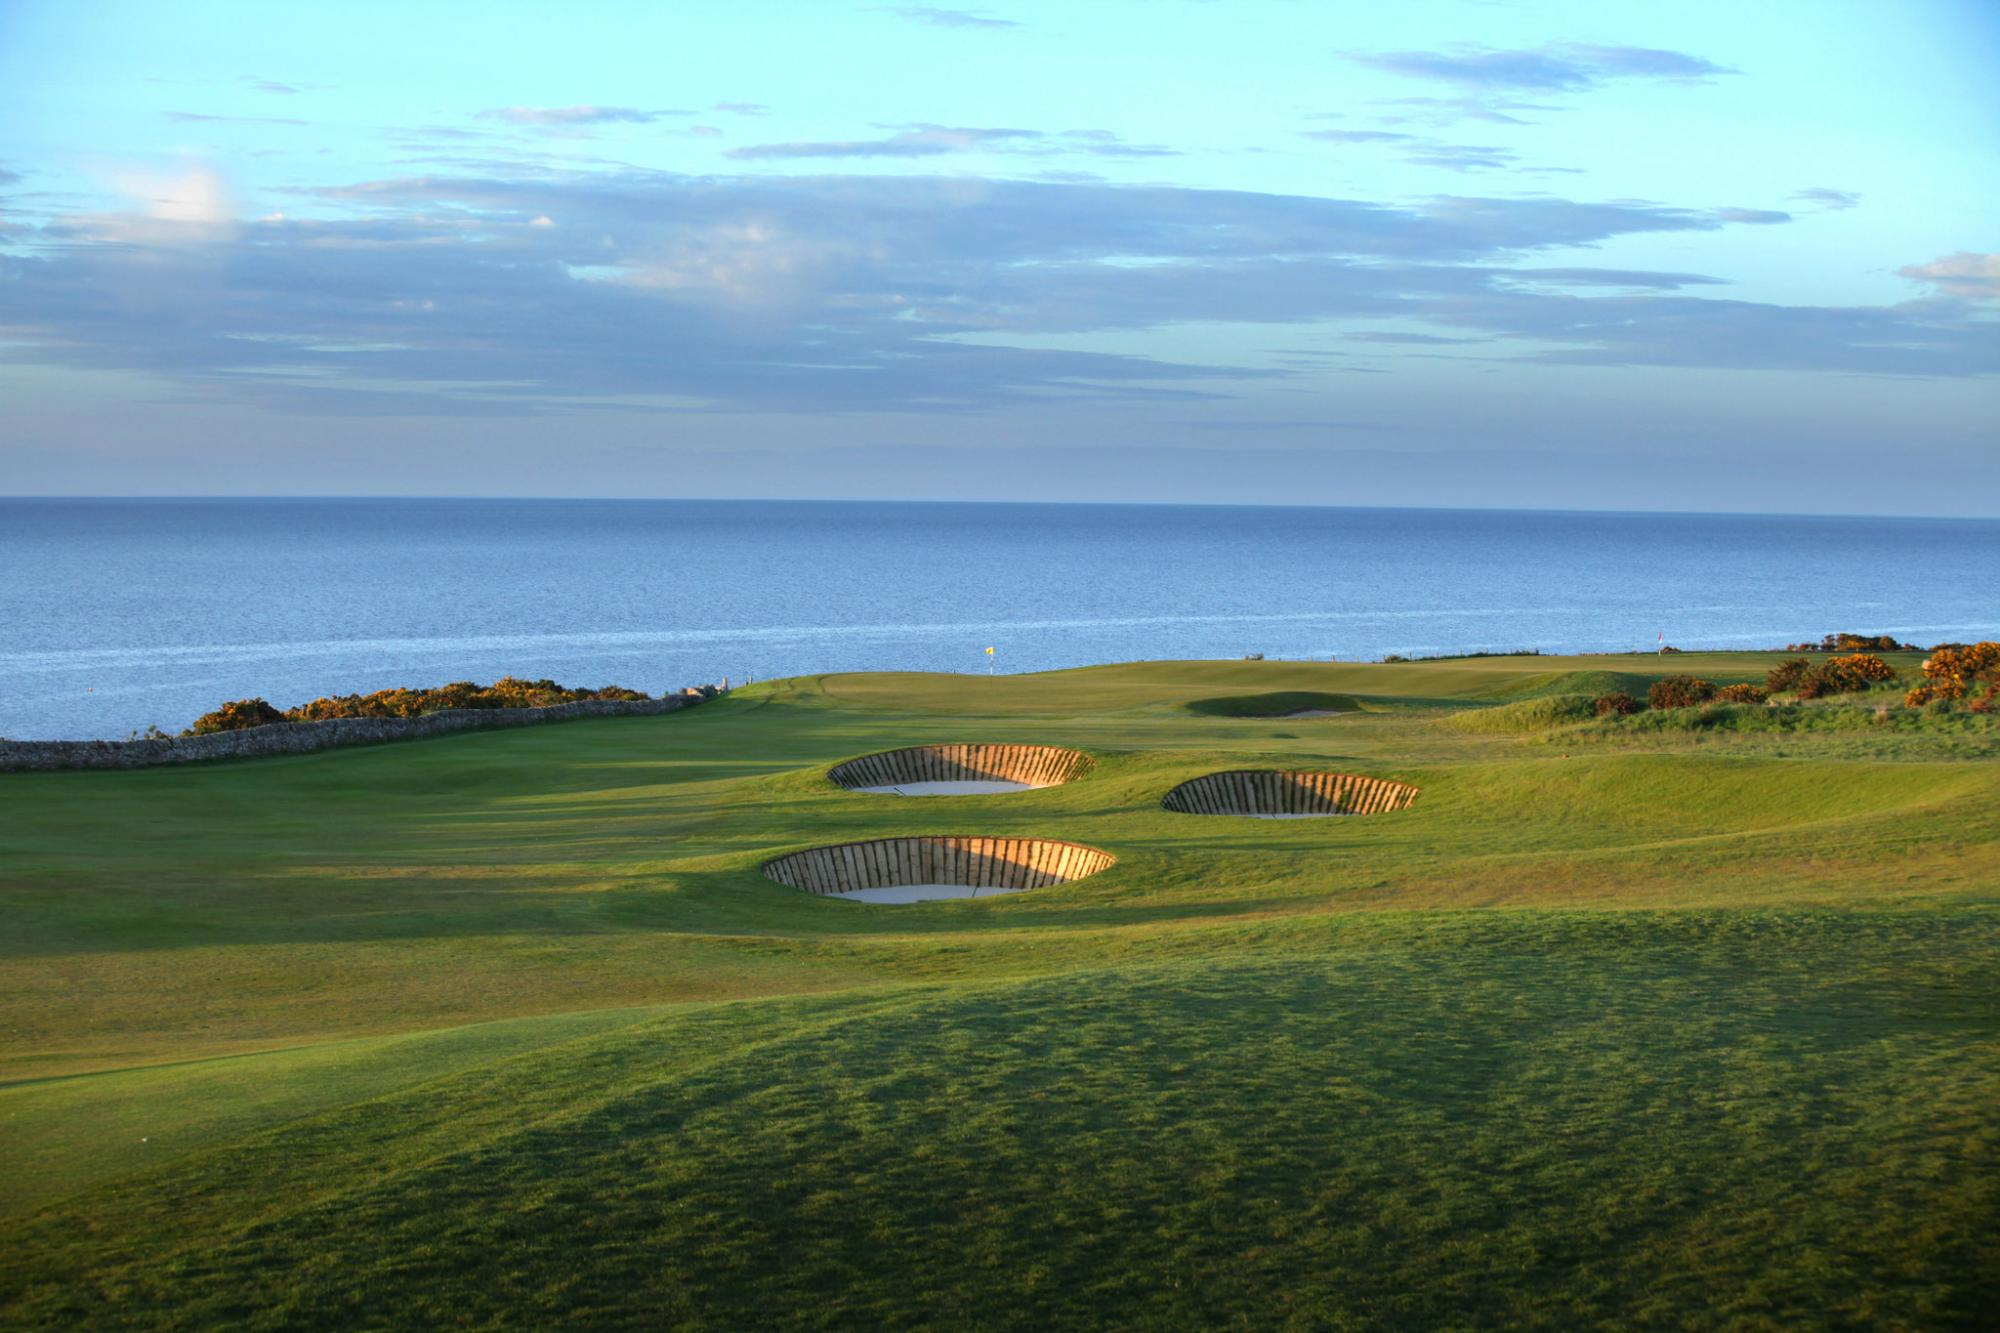 View Fairmont St Andrews Golf Course's beautiful golf course in dramatic Scotland.